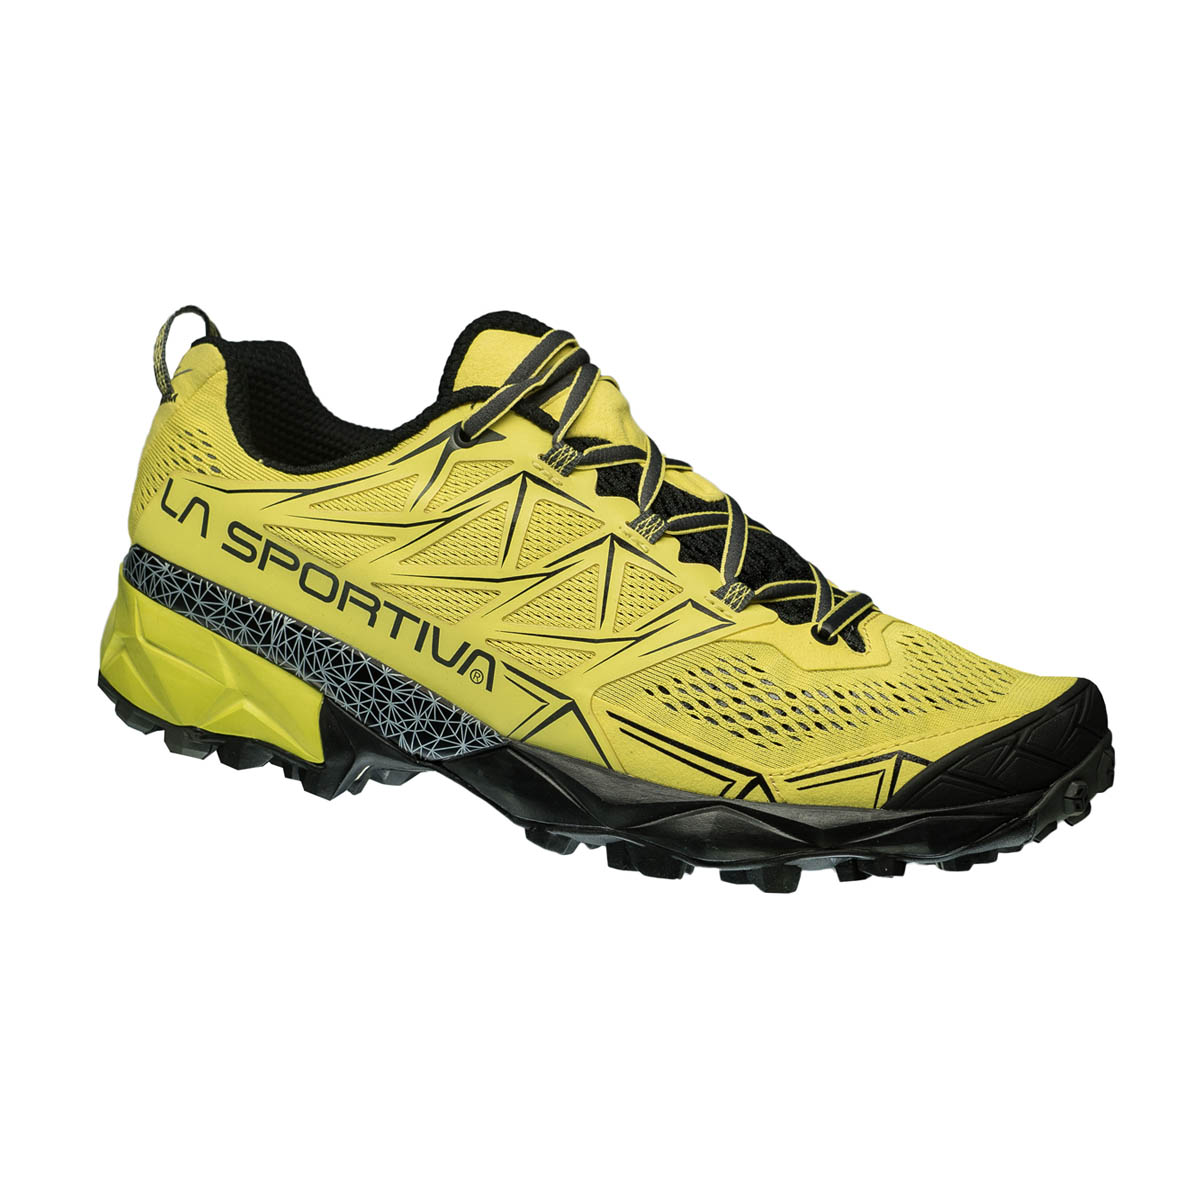 Types of Sole For Trail Running Shoes